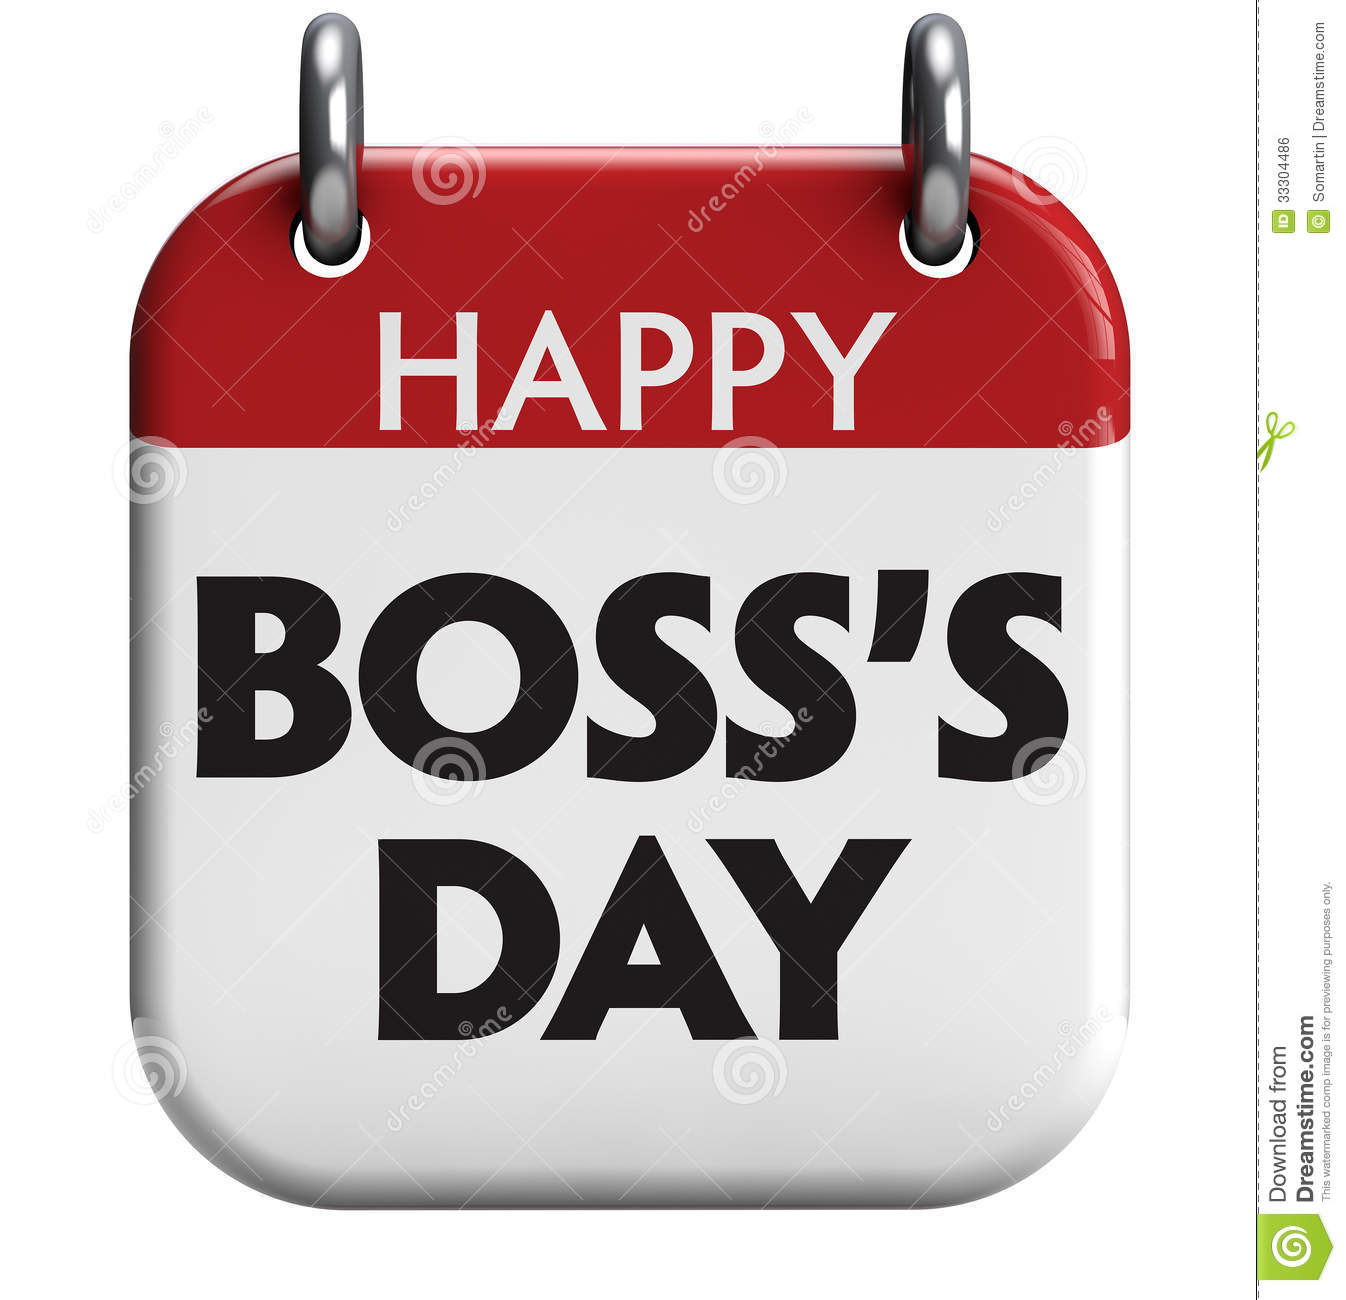 55+ Latest Boss Day Wish Pictures And Photos - Boss Day Cards Free Printable